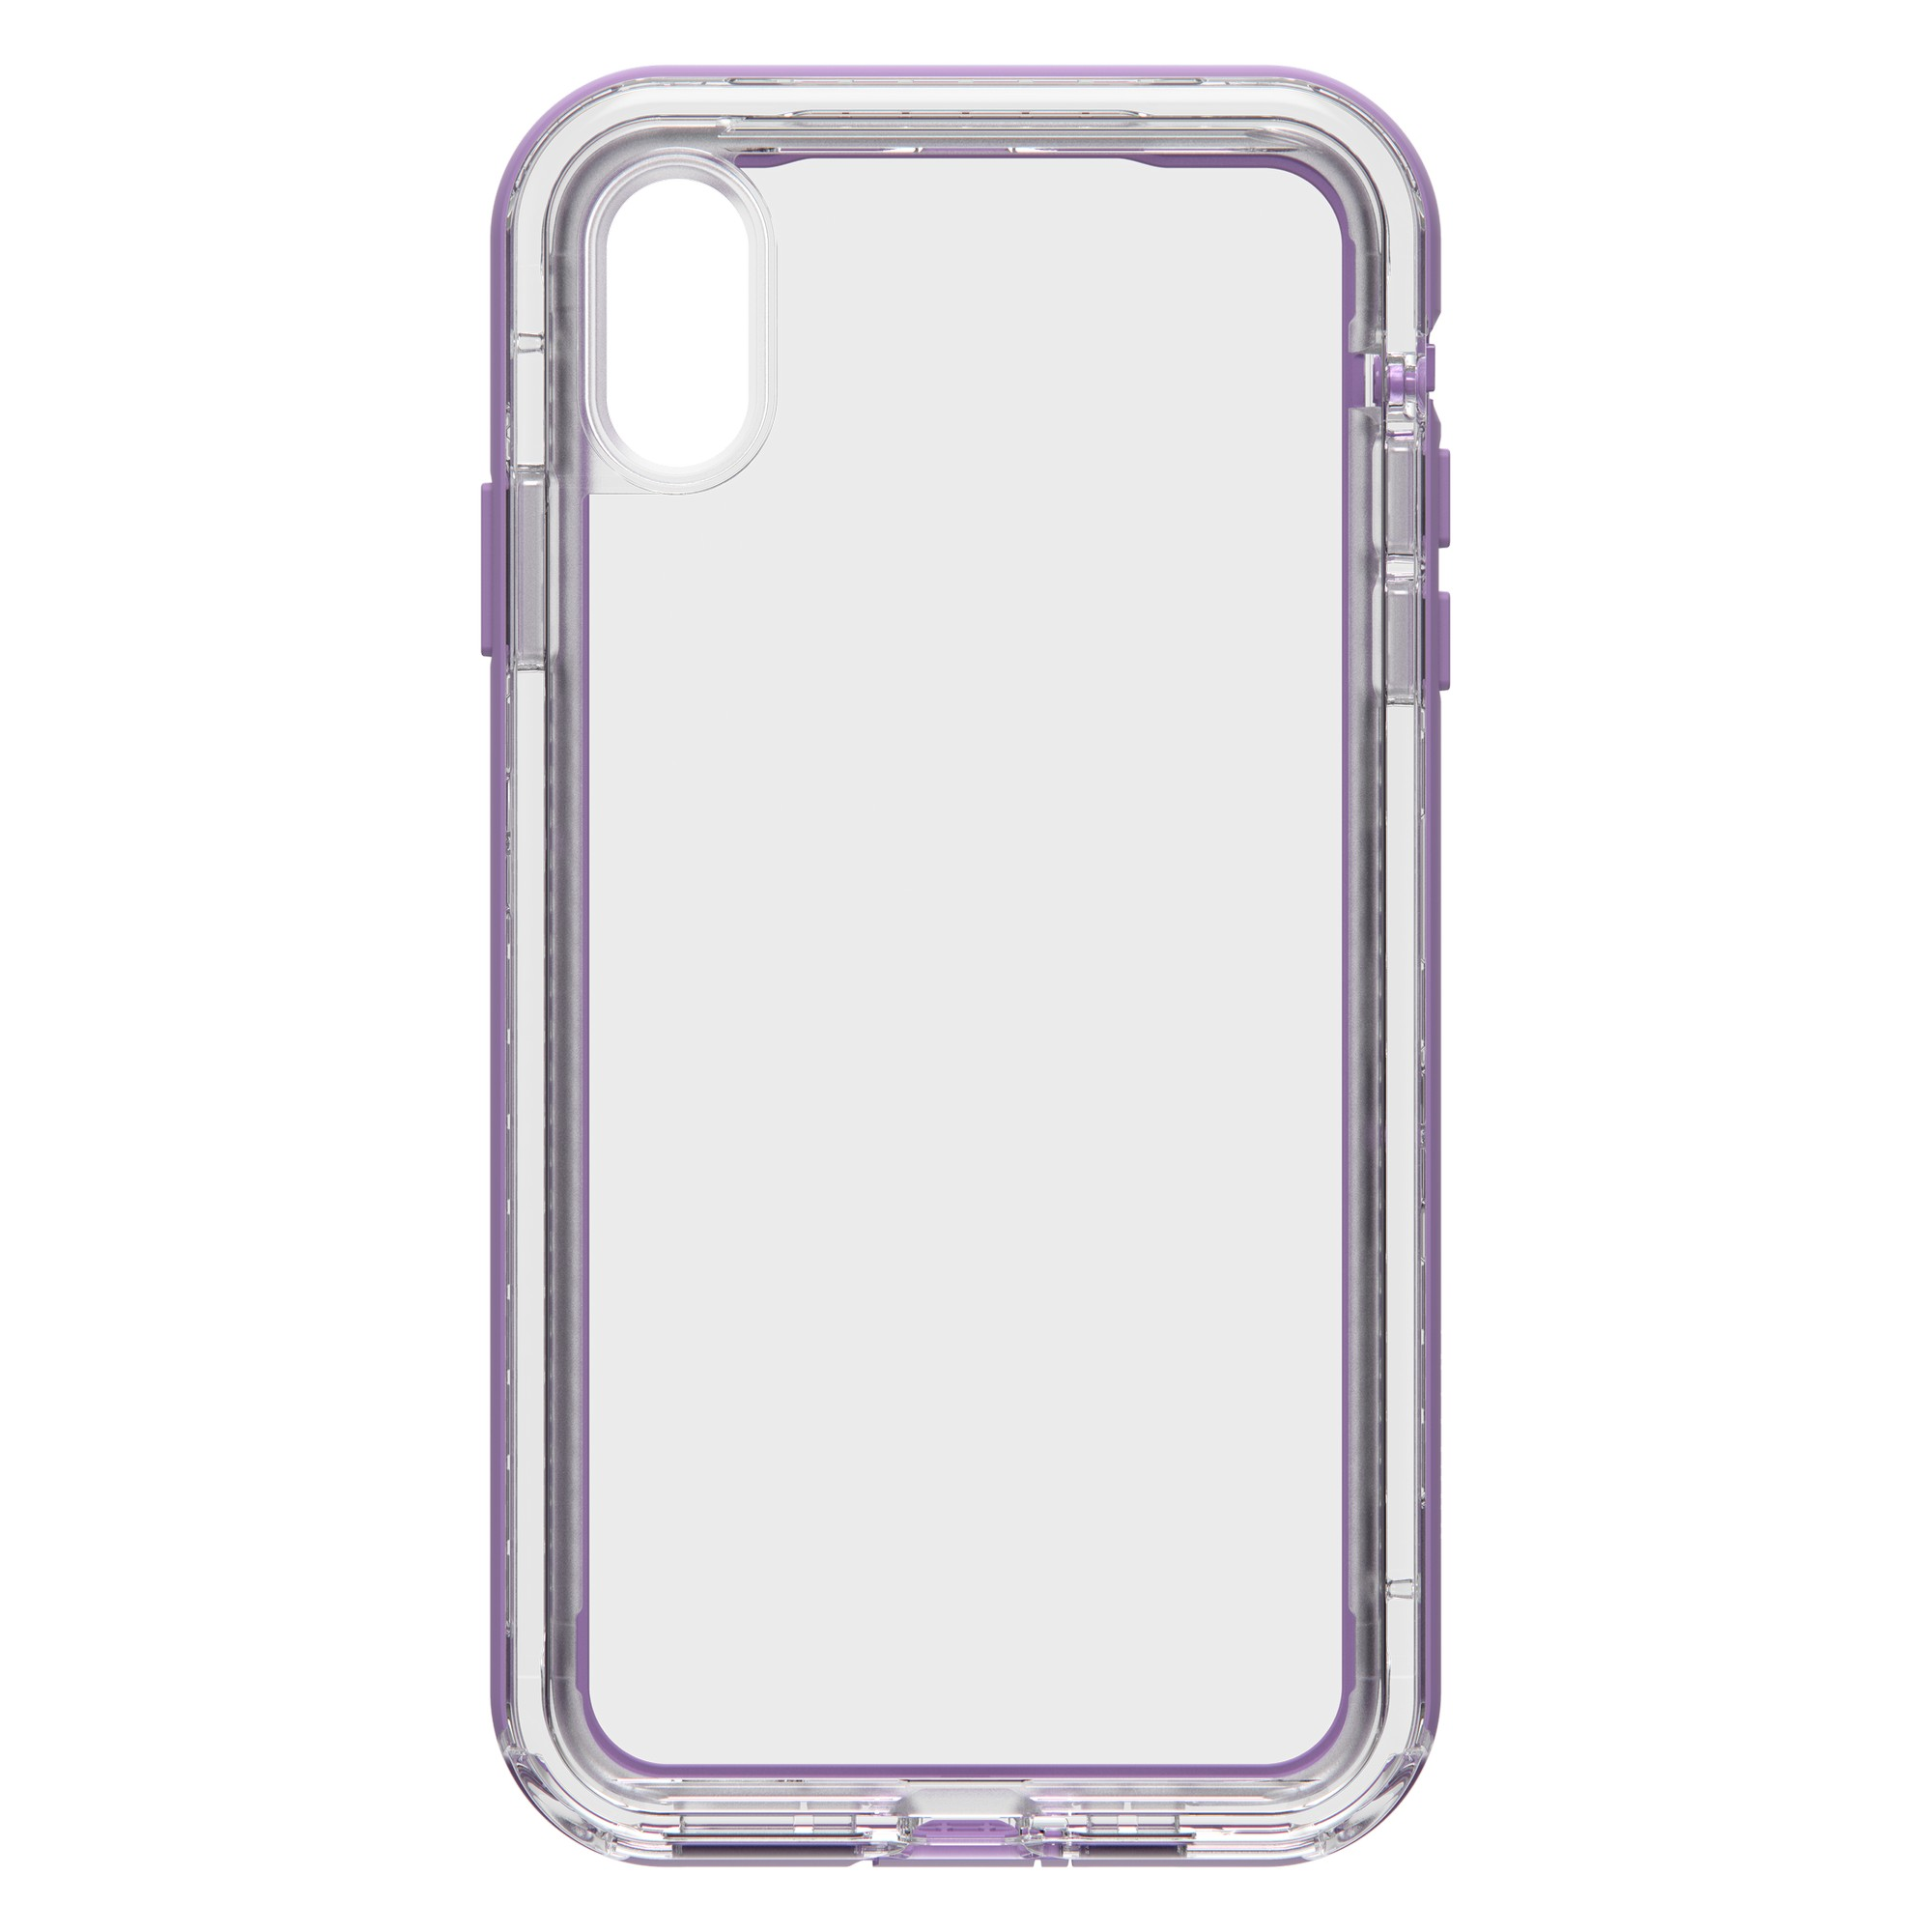 new concept f4ce4 8b046 LifeProof iPhone Xs Max Clear/Purple (Ultra) Next case - 77-60165